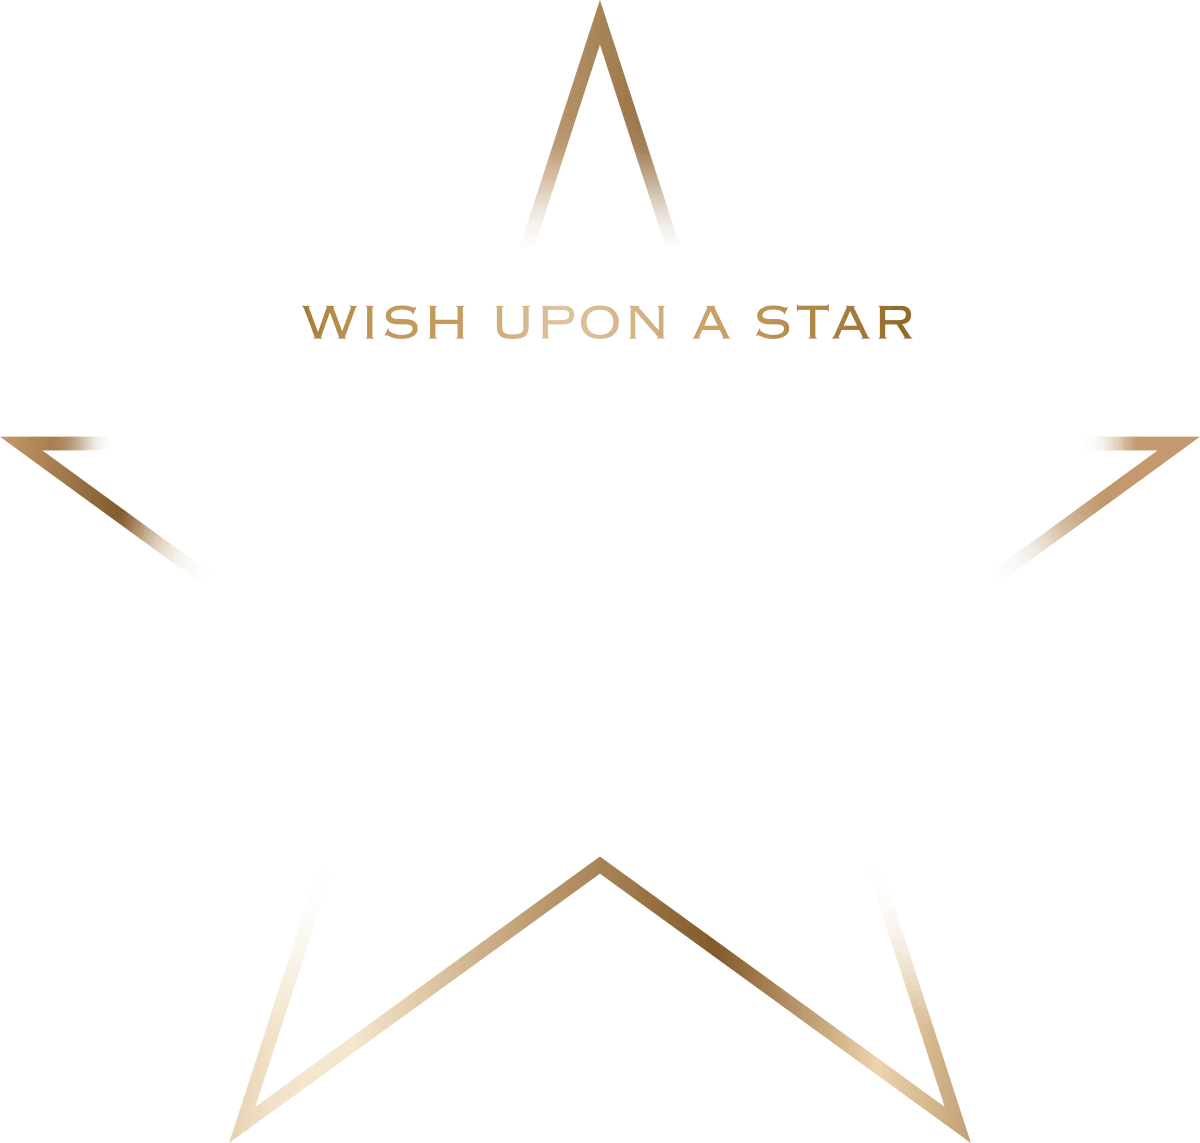 Wish Upon A Star - $20,000 worth of gifts to be won instantly!